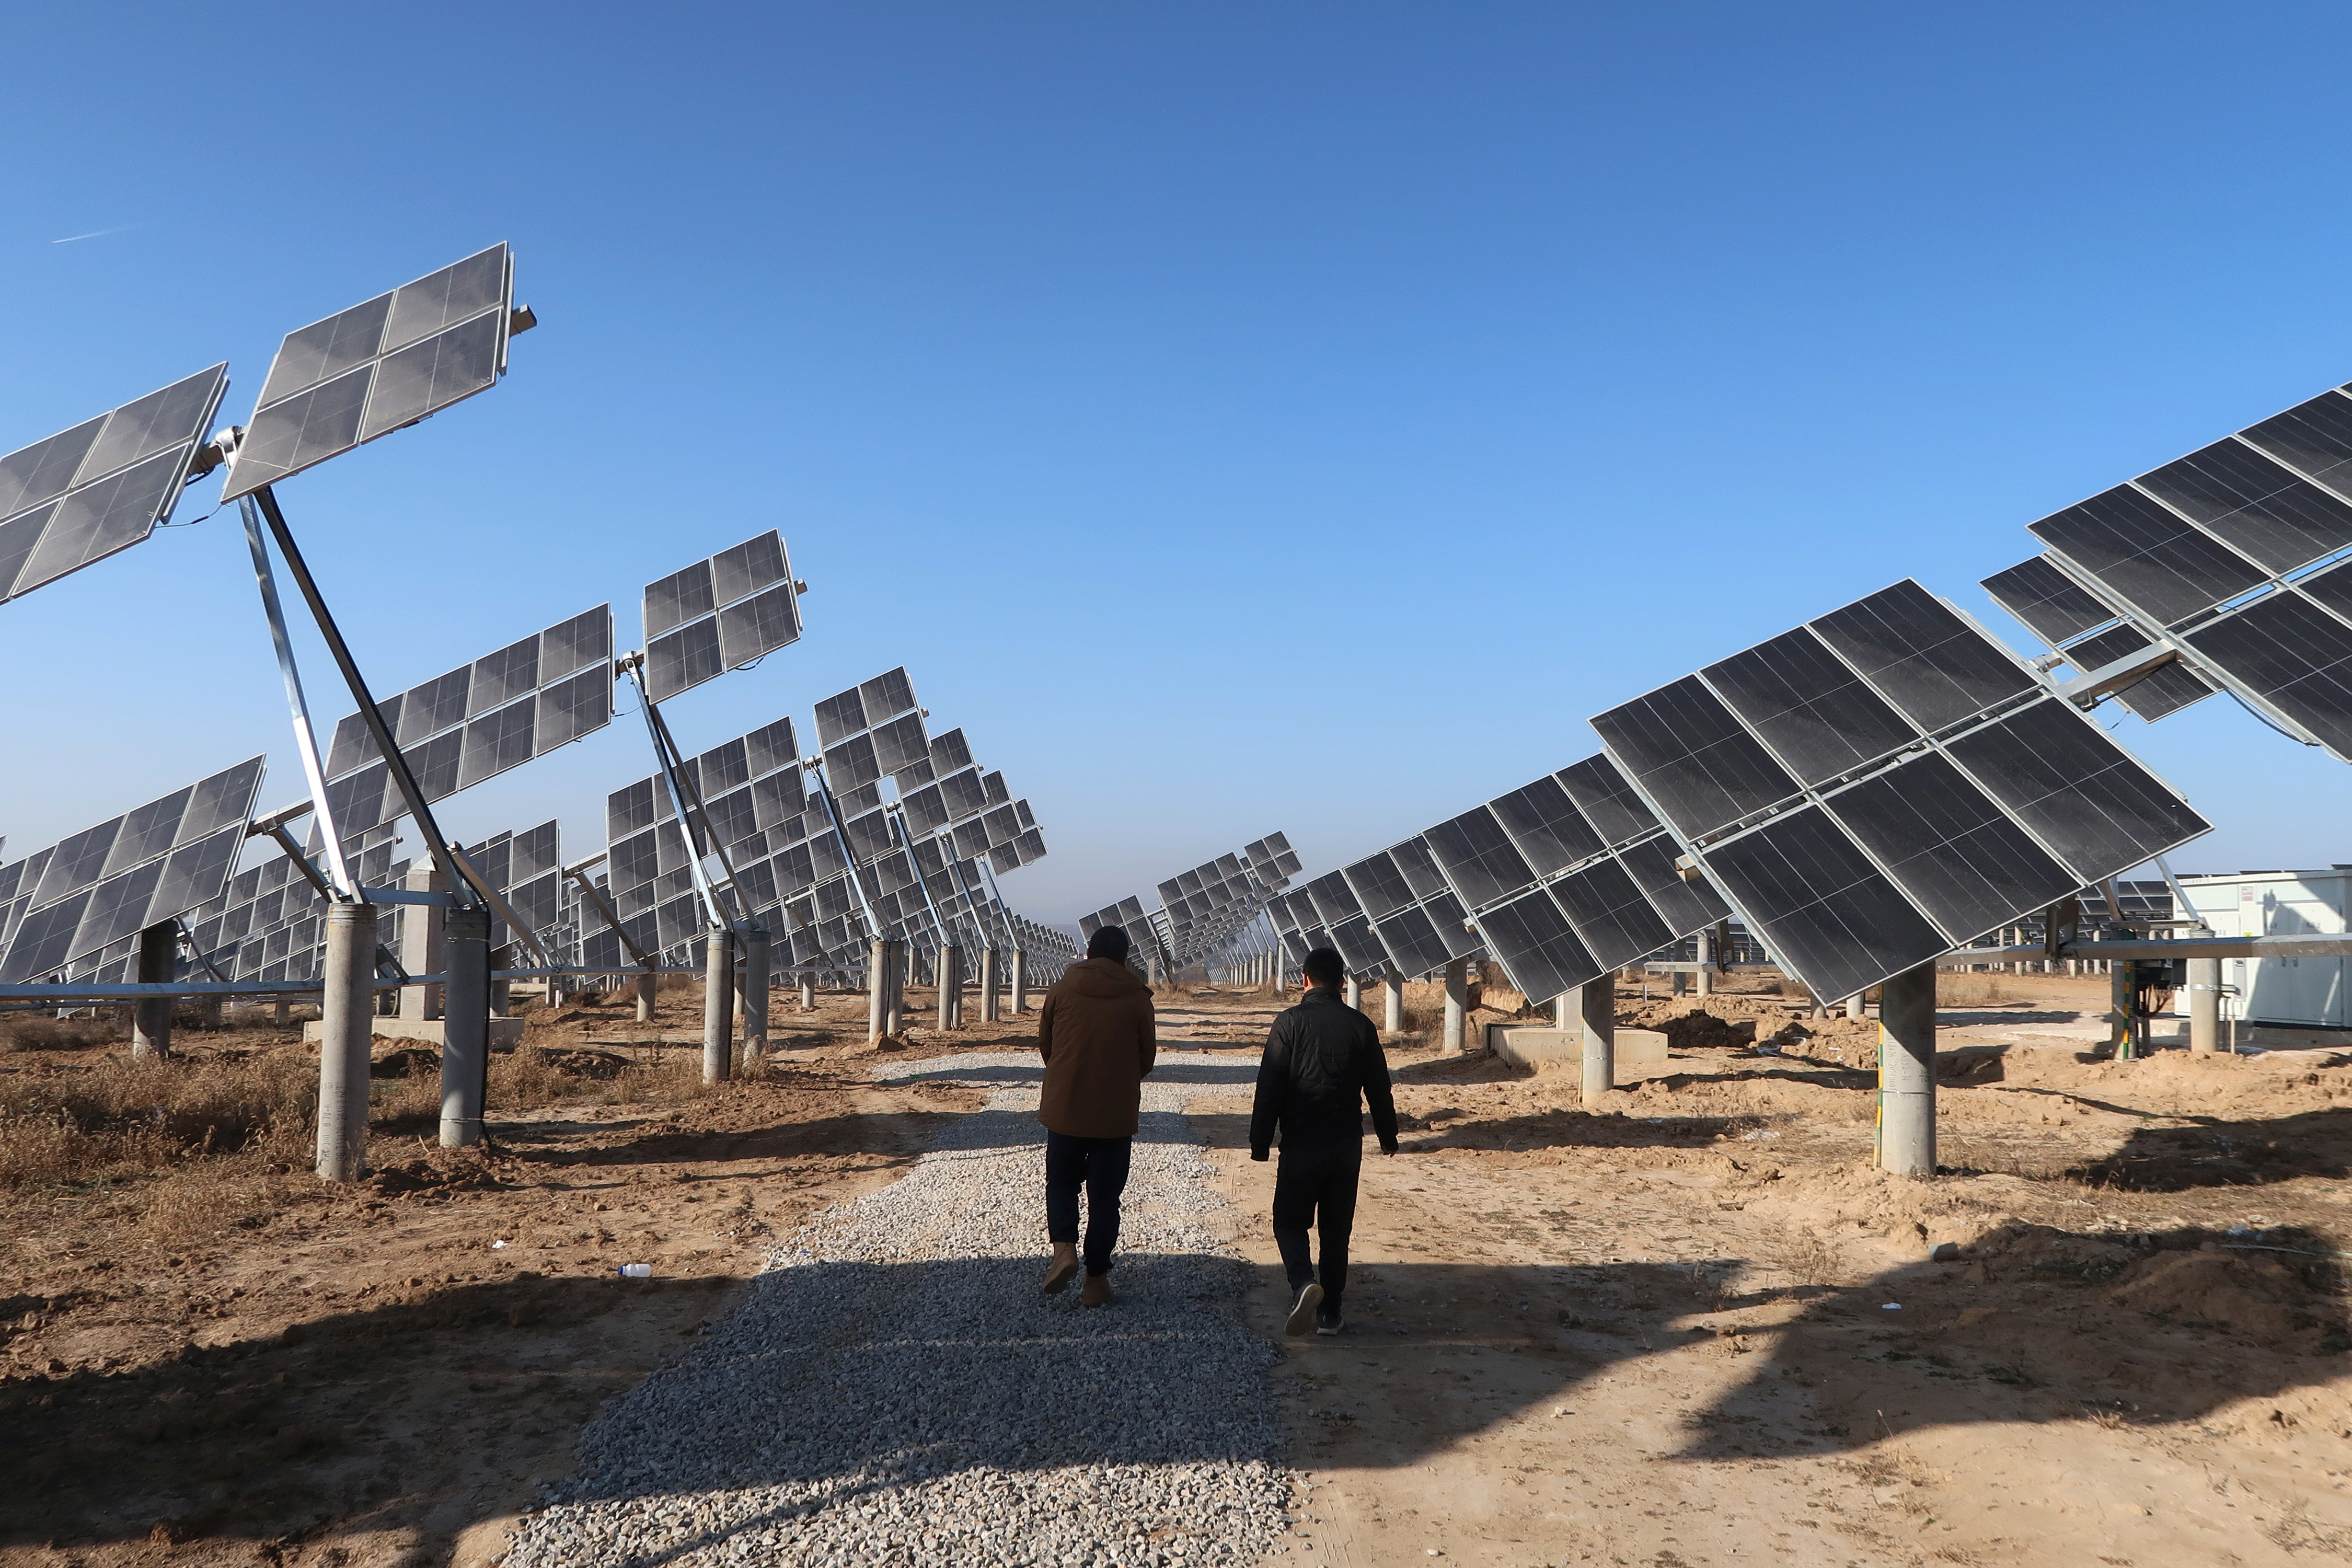 Workers walk at a solar power station in Tongchuan, Shaanxi province, China December 11, 2019. Picture taken December 11, 2019. REUTERS/Muyu Xu - RC2JXD9H0H3R